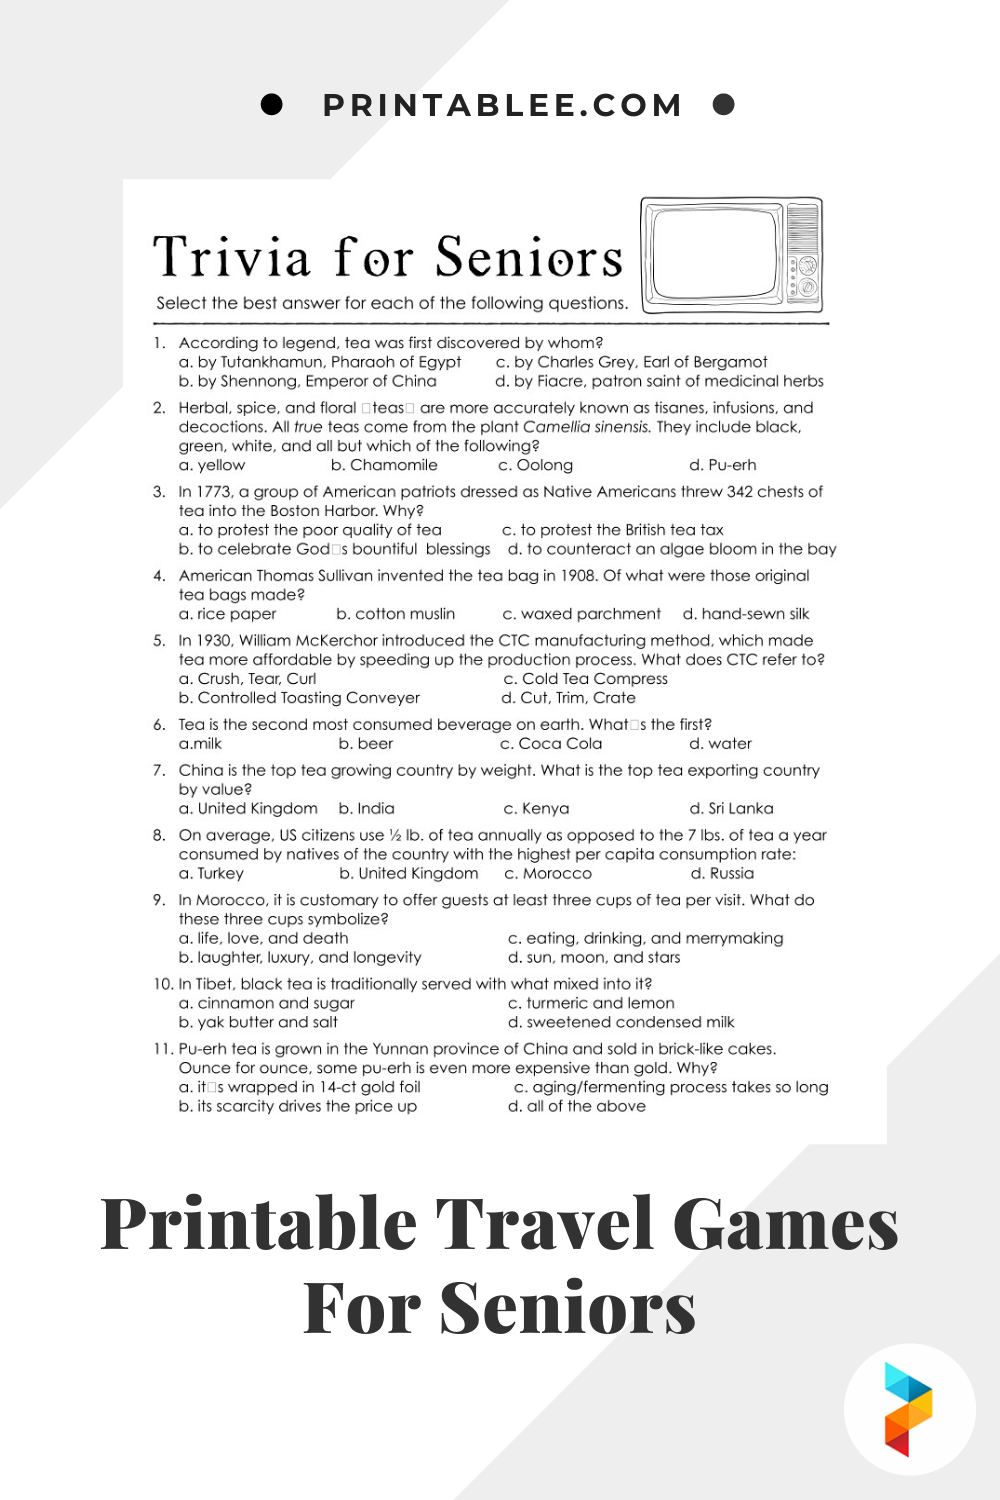 Printable Travel Games For Seniors